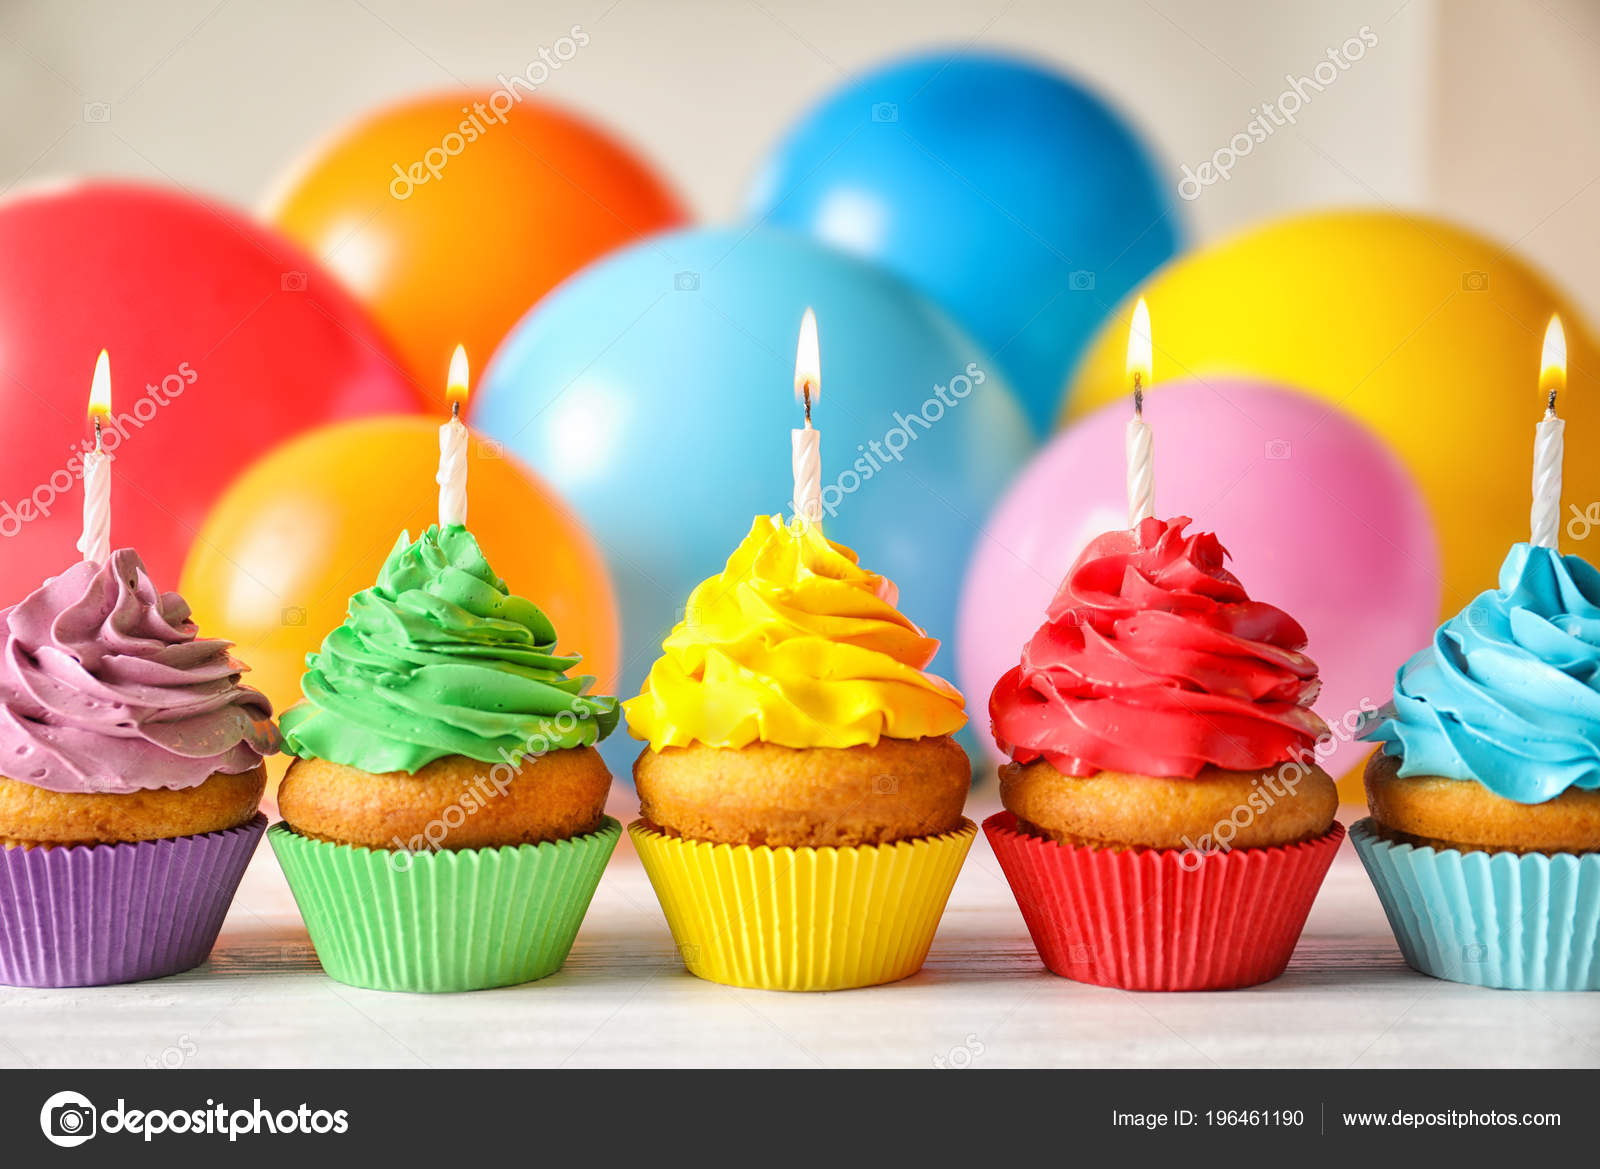 Delicious Birthday Cupcakes Candles Blurred Balloons